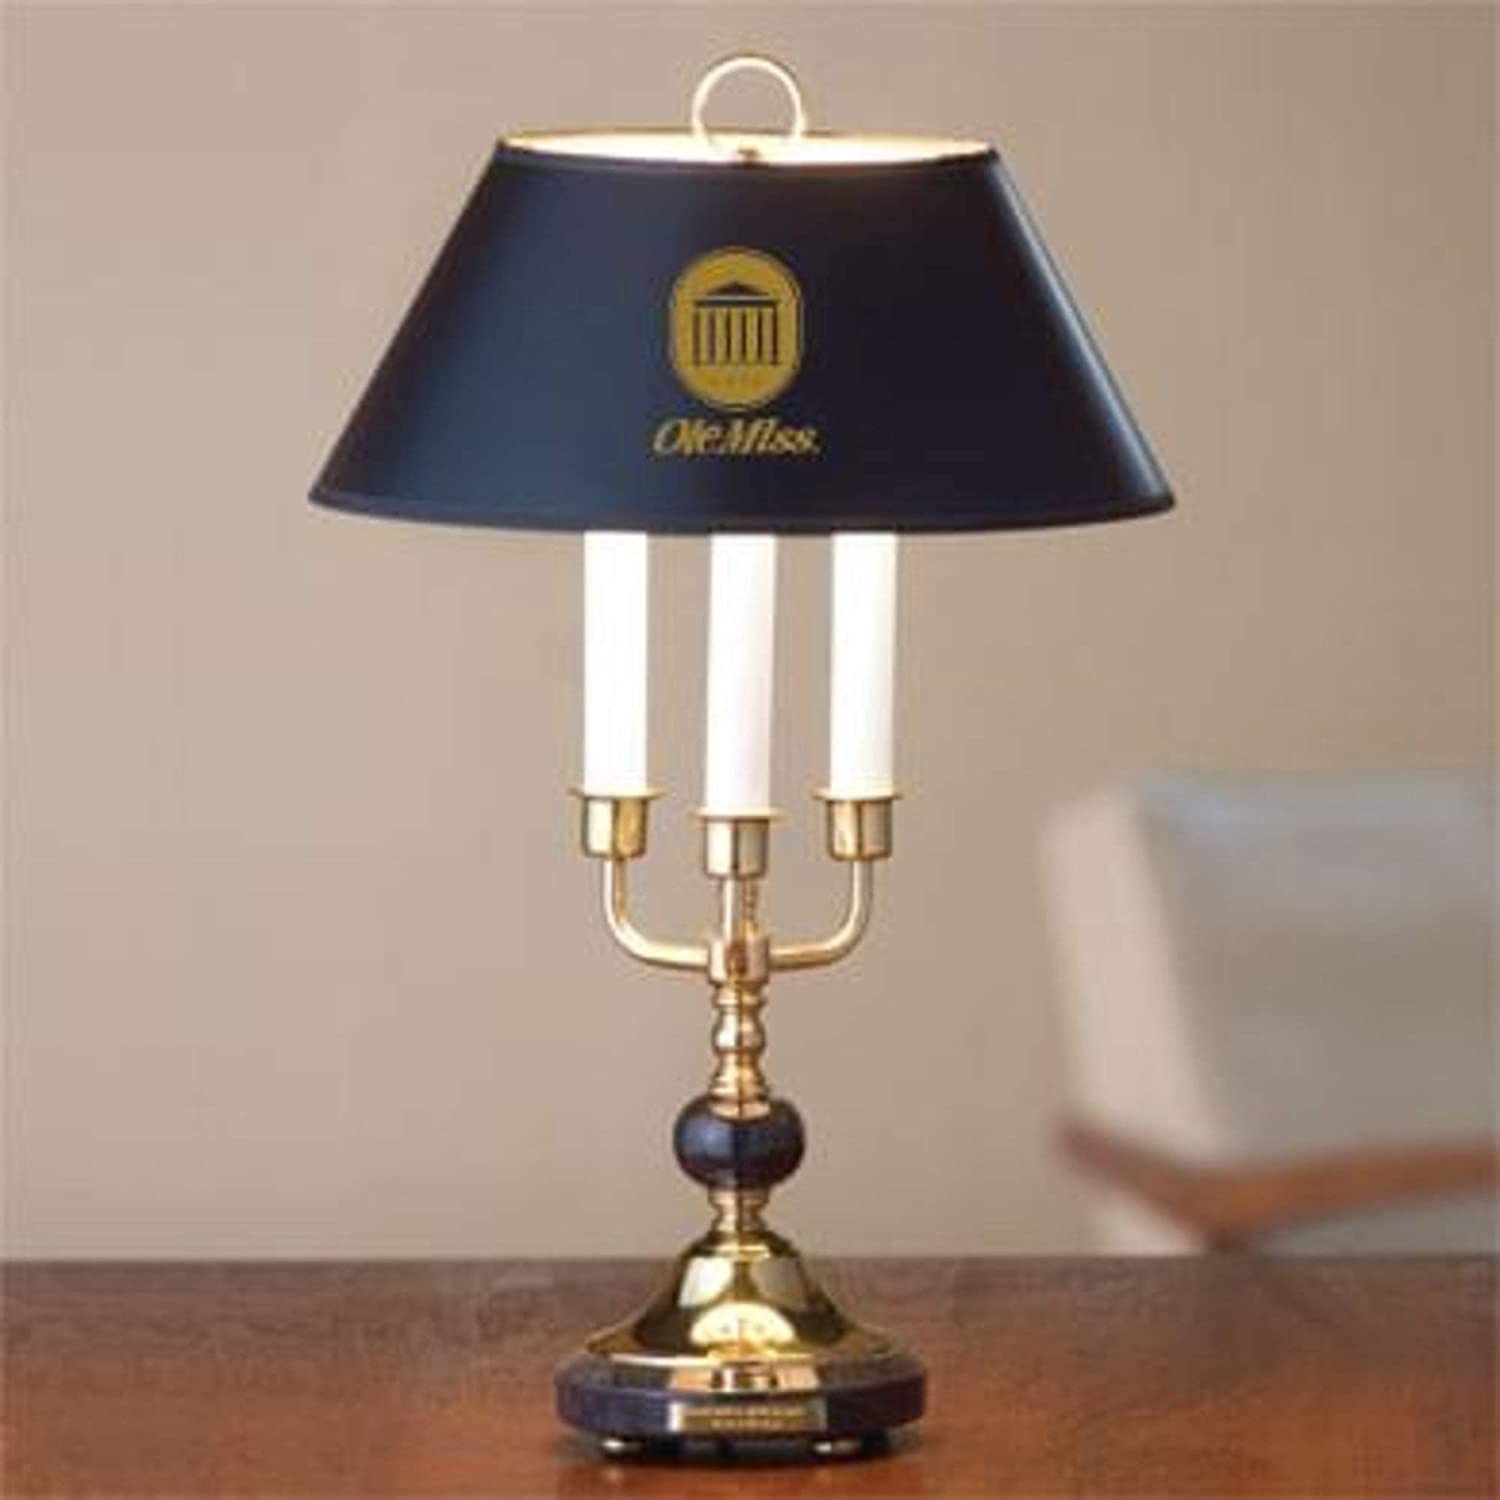 LA HART University of Mississippi Lamp in Brass /& Marble M